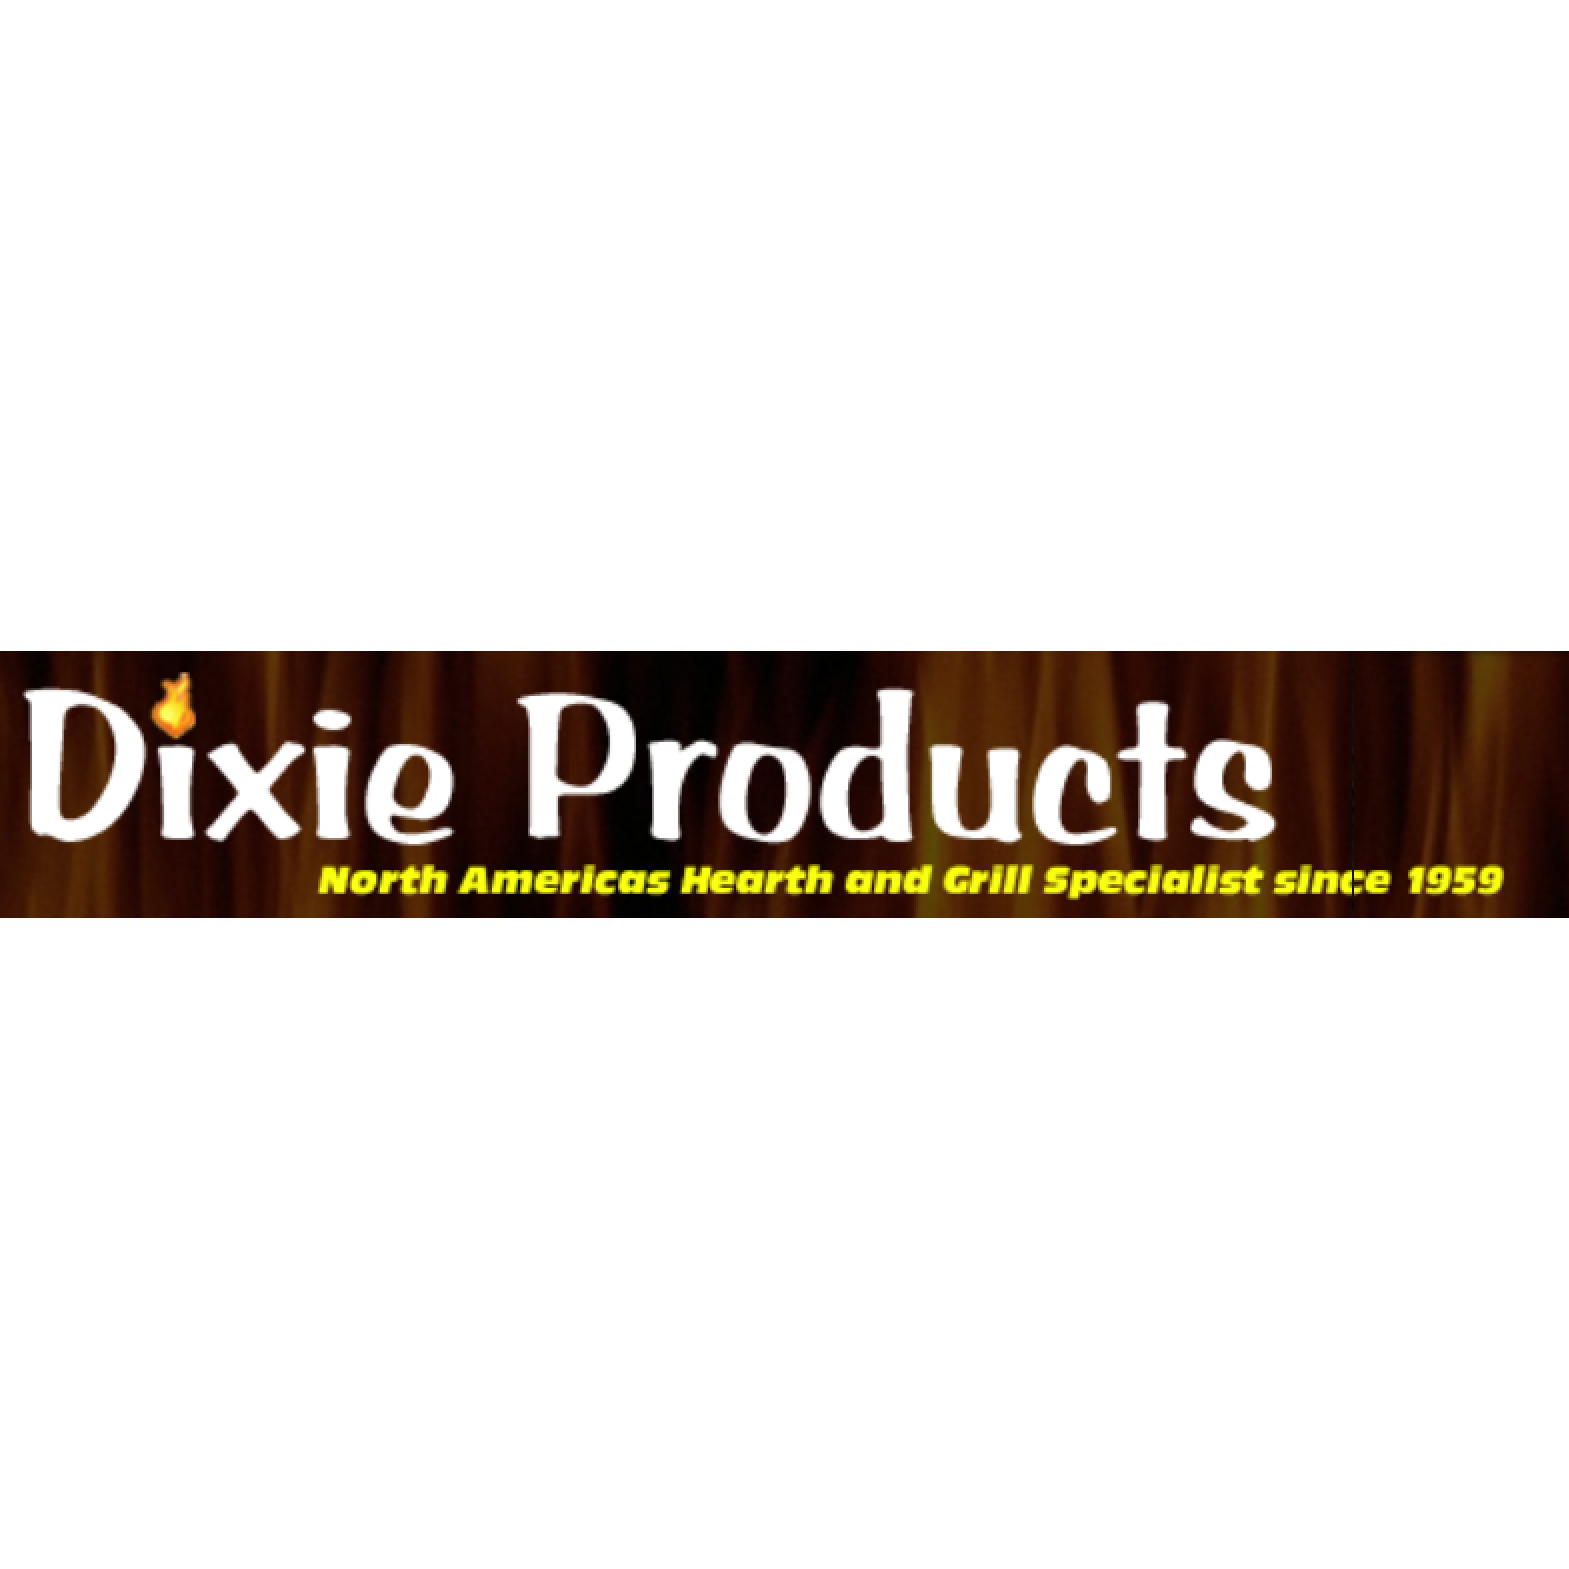 Dixie Building Products Inc dba Dixie Products - Roanoke, VA - Fireplace & Wood Stoves